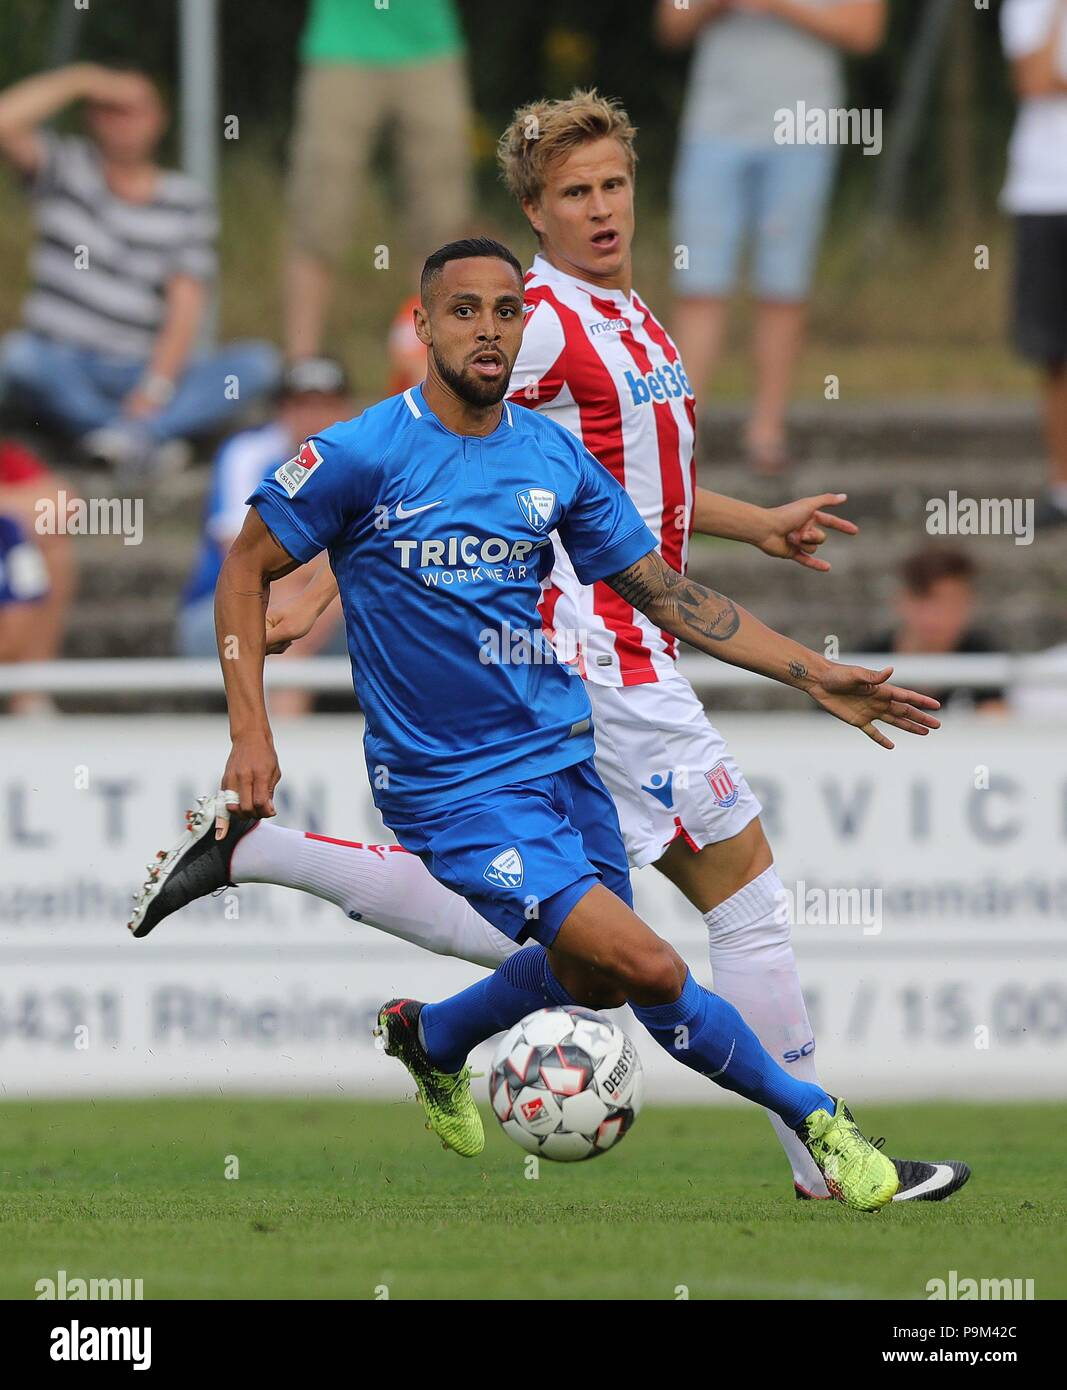 firo: 18.07.2018, Football, 2.Bundesliga, Season 2018/2019, VfL Bochum - Stoke City in Rheine Sidney SAM, Bochum, duels | - Stock Image